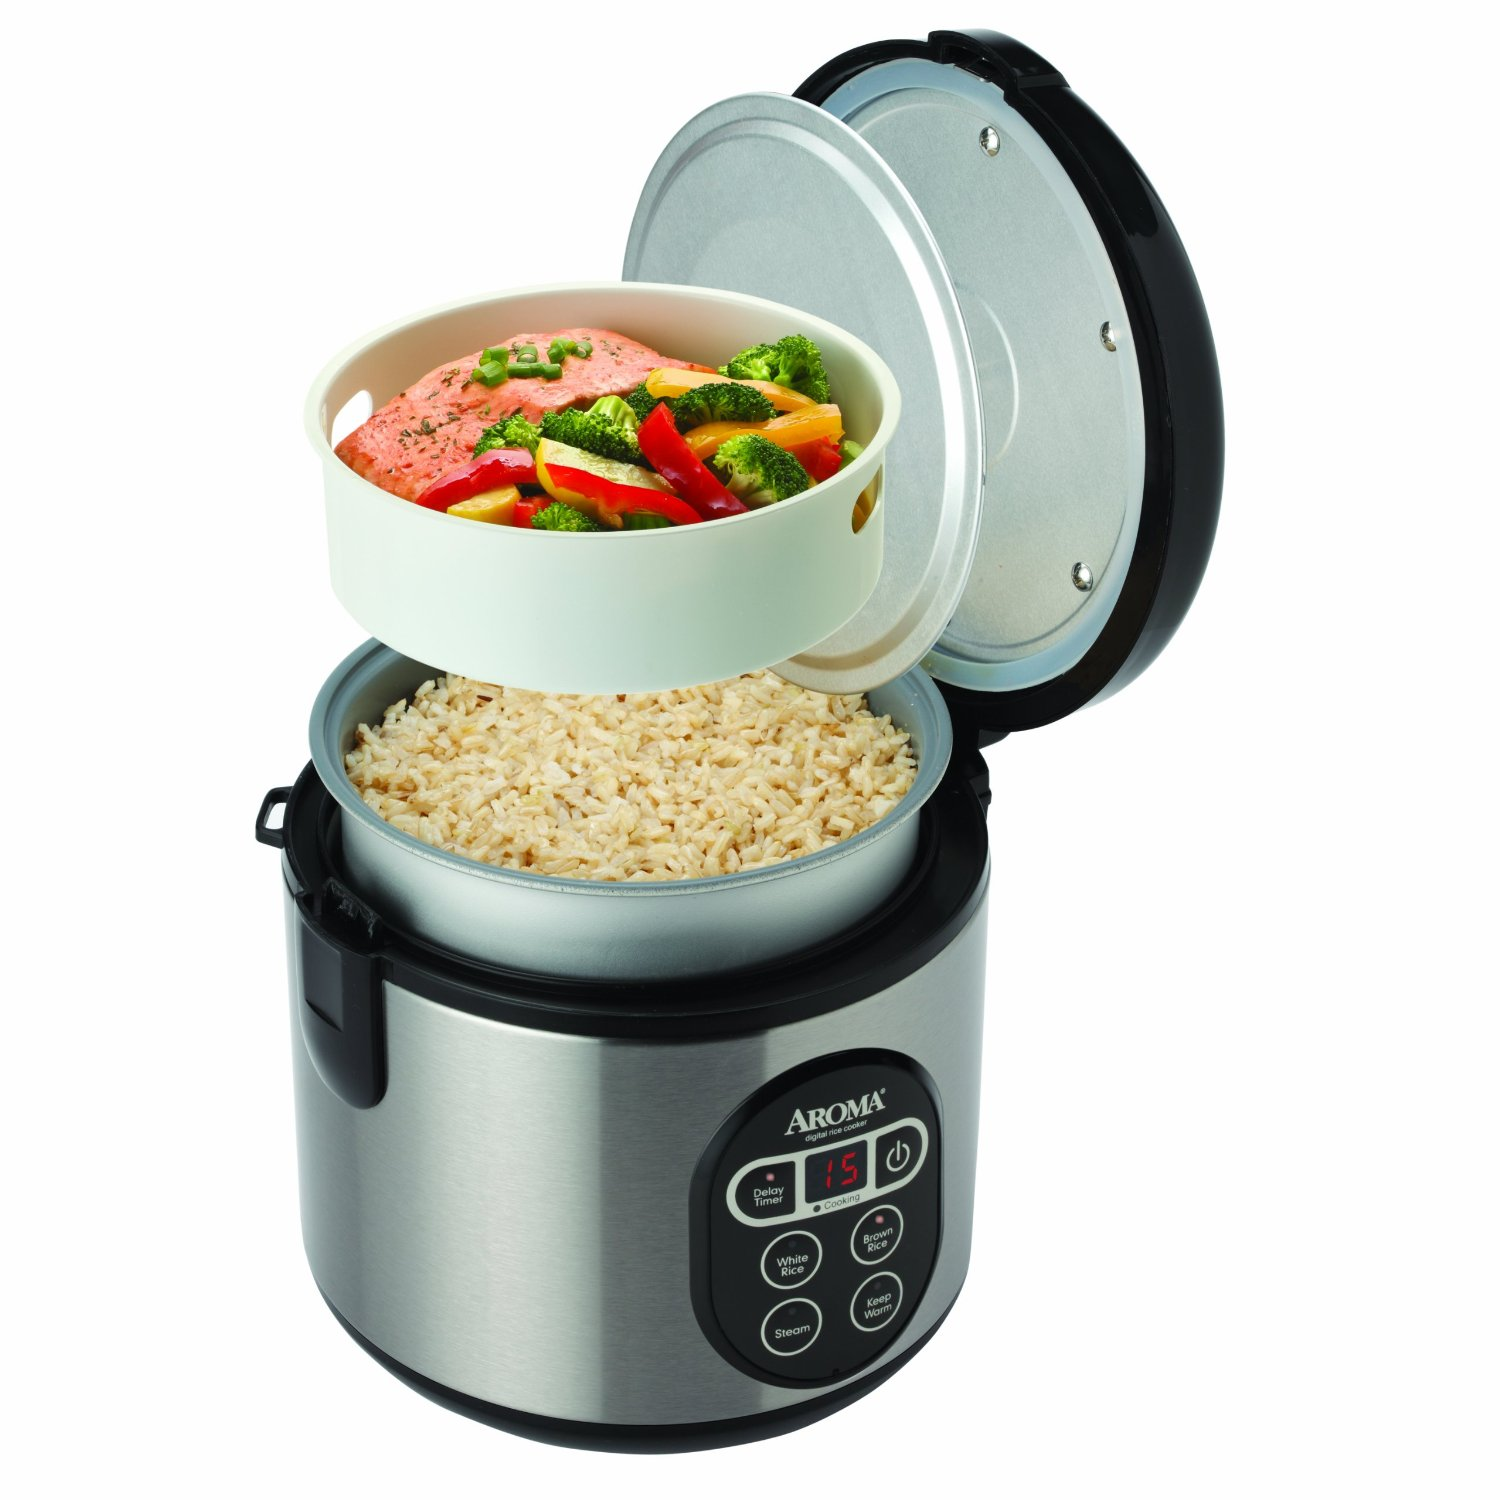 155d5bde7 Aroma Housewares ARC-914SBD 8-Cup (Cooked) Digital Cool-Touch Rice ...